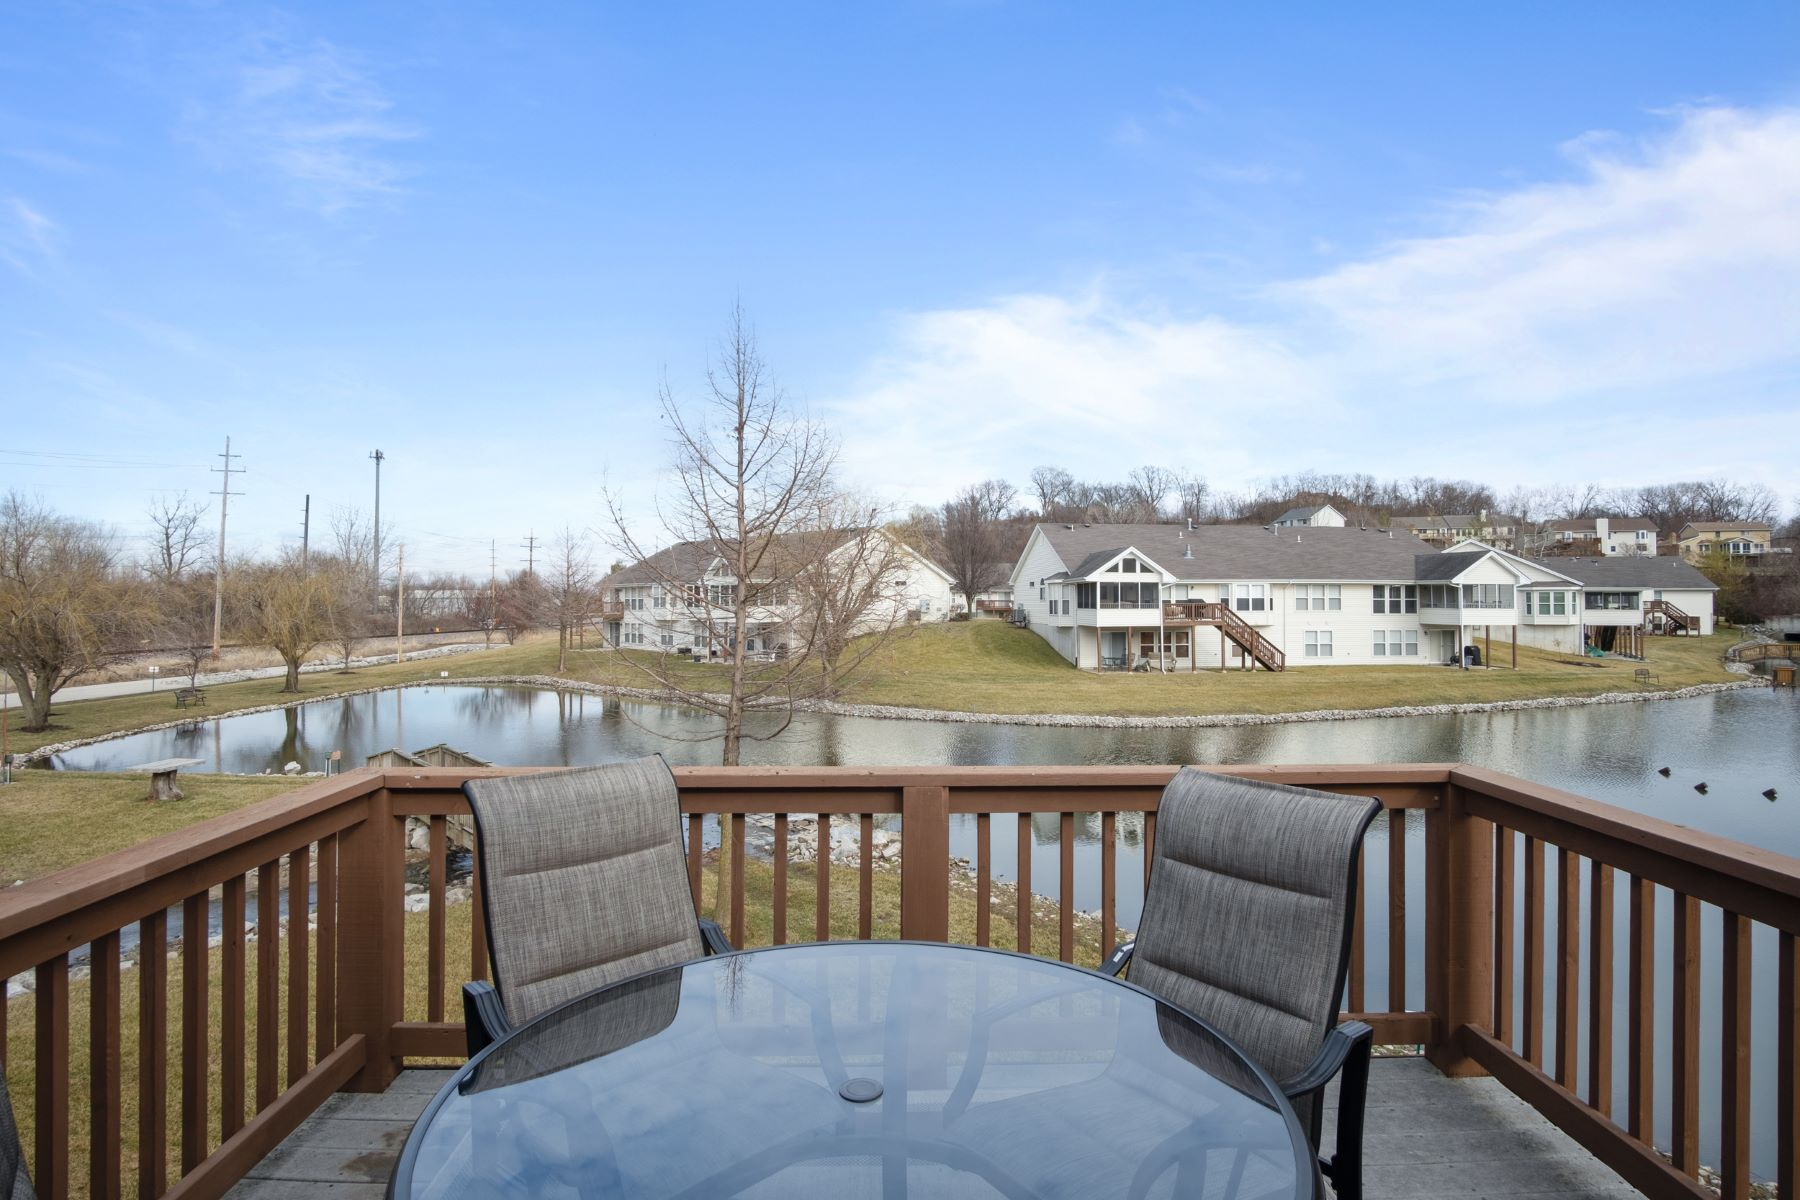 Additional photo for property listing at Lakefront Villa in Villas at Sterling Pointe 48 Shimmering Lake Court #7B St. Charles, Missouri 63301 United States